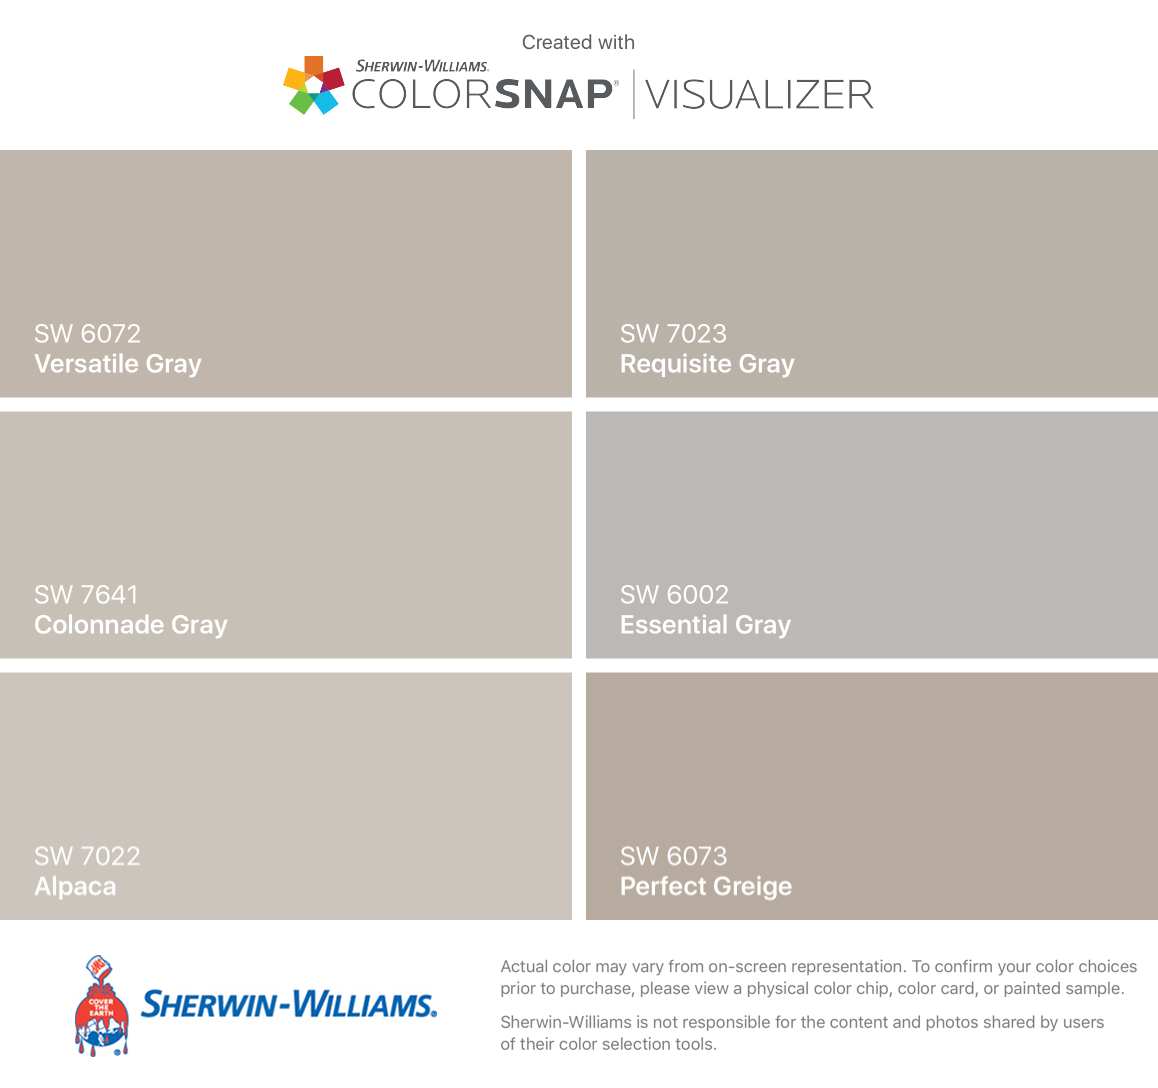 I Found These Colors With Colorsnap Visualizer For Iphone By Sherwin Williams Versatile Gray